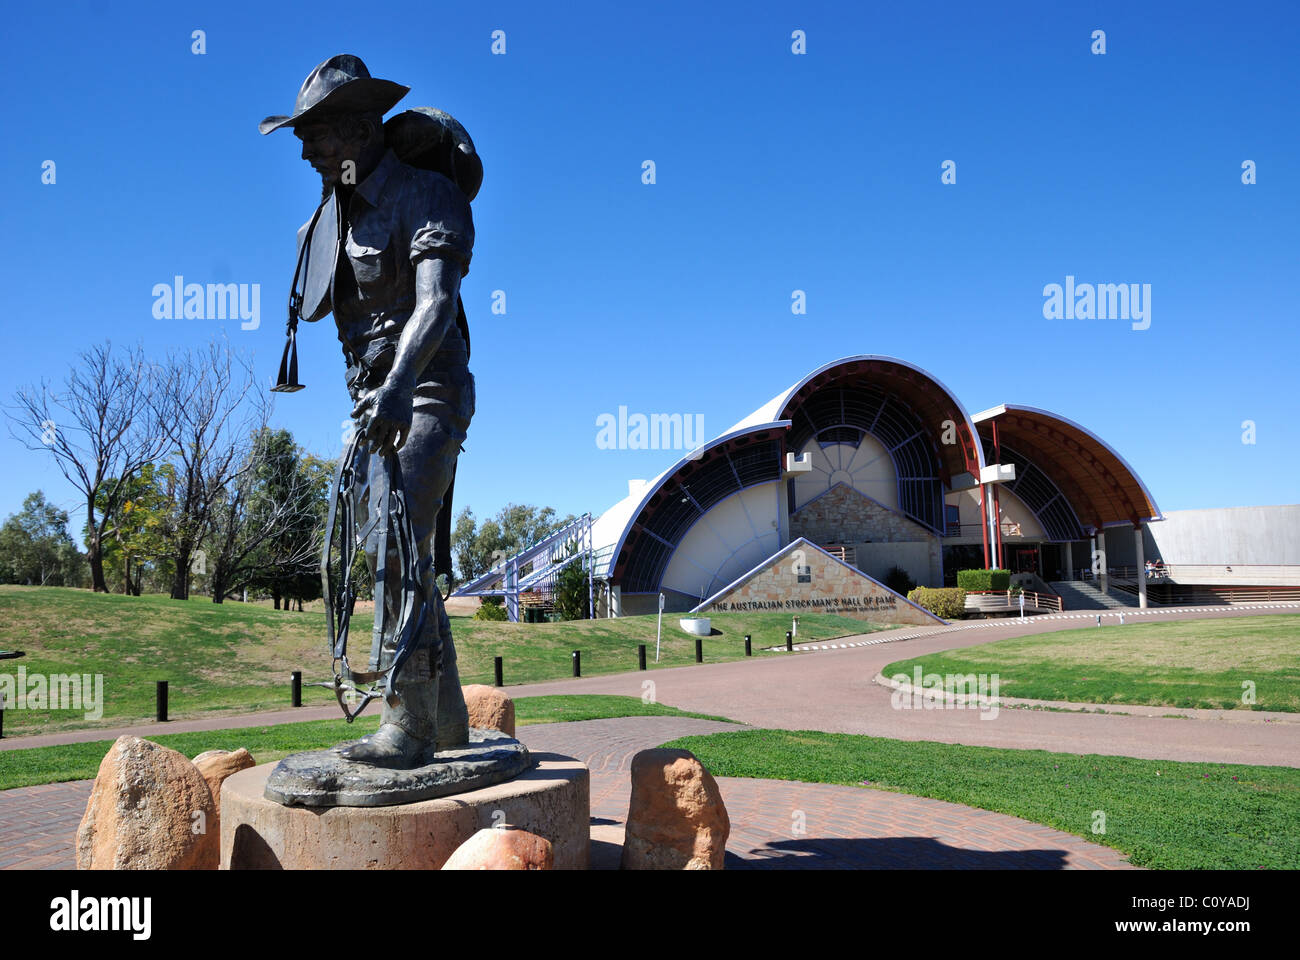 Stockman statue with Stockman's Hall of Fame building in background, Longreach, Queensland, Australia Stock Photo